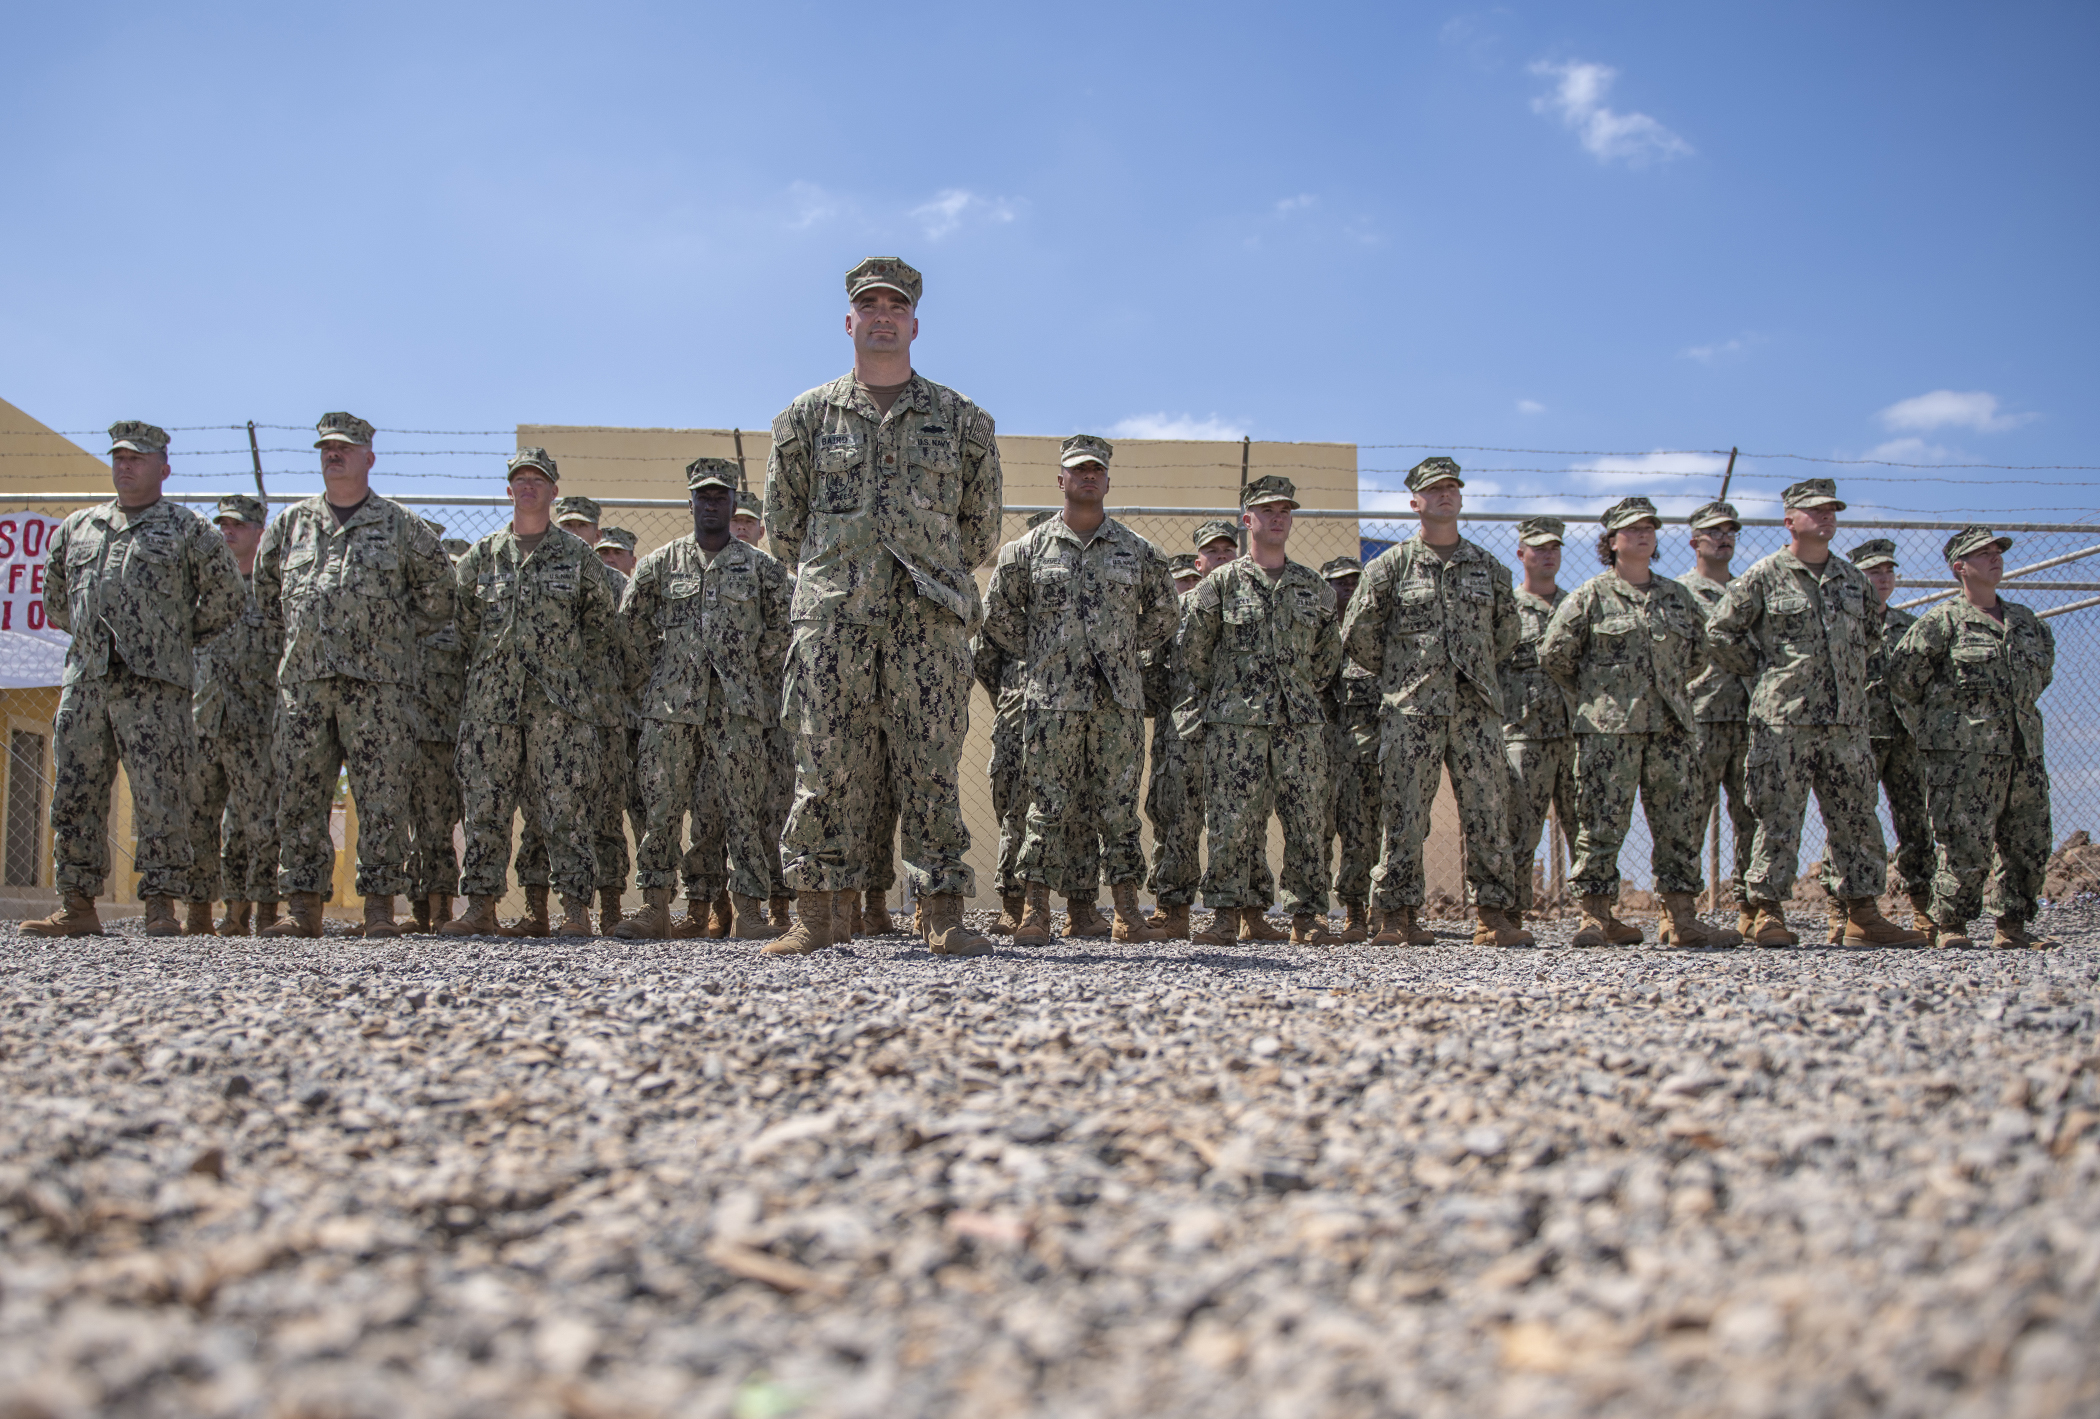 U.S. Navy Seabees from Naval Mobile Construction Battalion 1, assigned to Combined Joint Task Force-Horn of Africa, stand in formation during the Ali Oune Medical Clinic ribbon cutting ceremony in Ali Oune, Djibouti, Jan. 31, 2019. The clinic, which the Seabees have worked on for five months, is intended to enhance the Ministry of Health for Djibouti's ability to provide basic medical, birth and after care to the Ali Oune village and its more than 1,000 residents and rural neighbors. (U.S. Air Force photo by Tech. Sgt. Shawn Nickel)